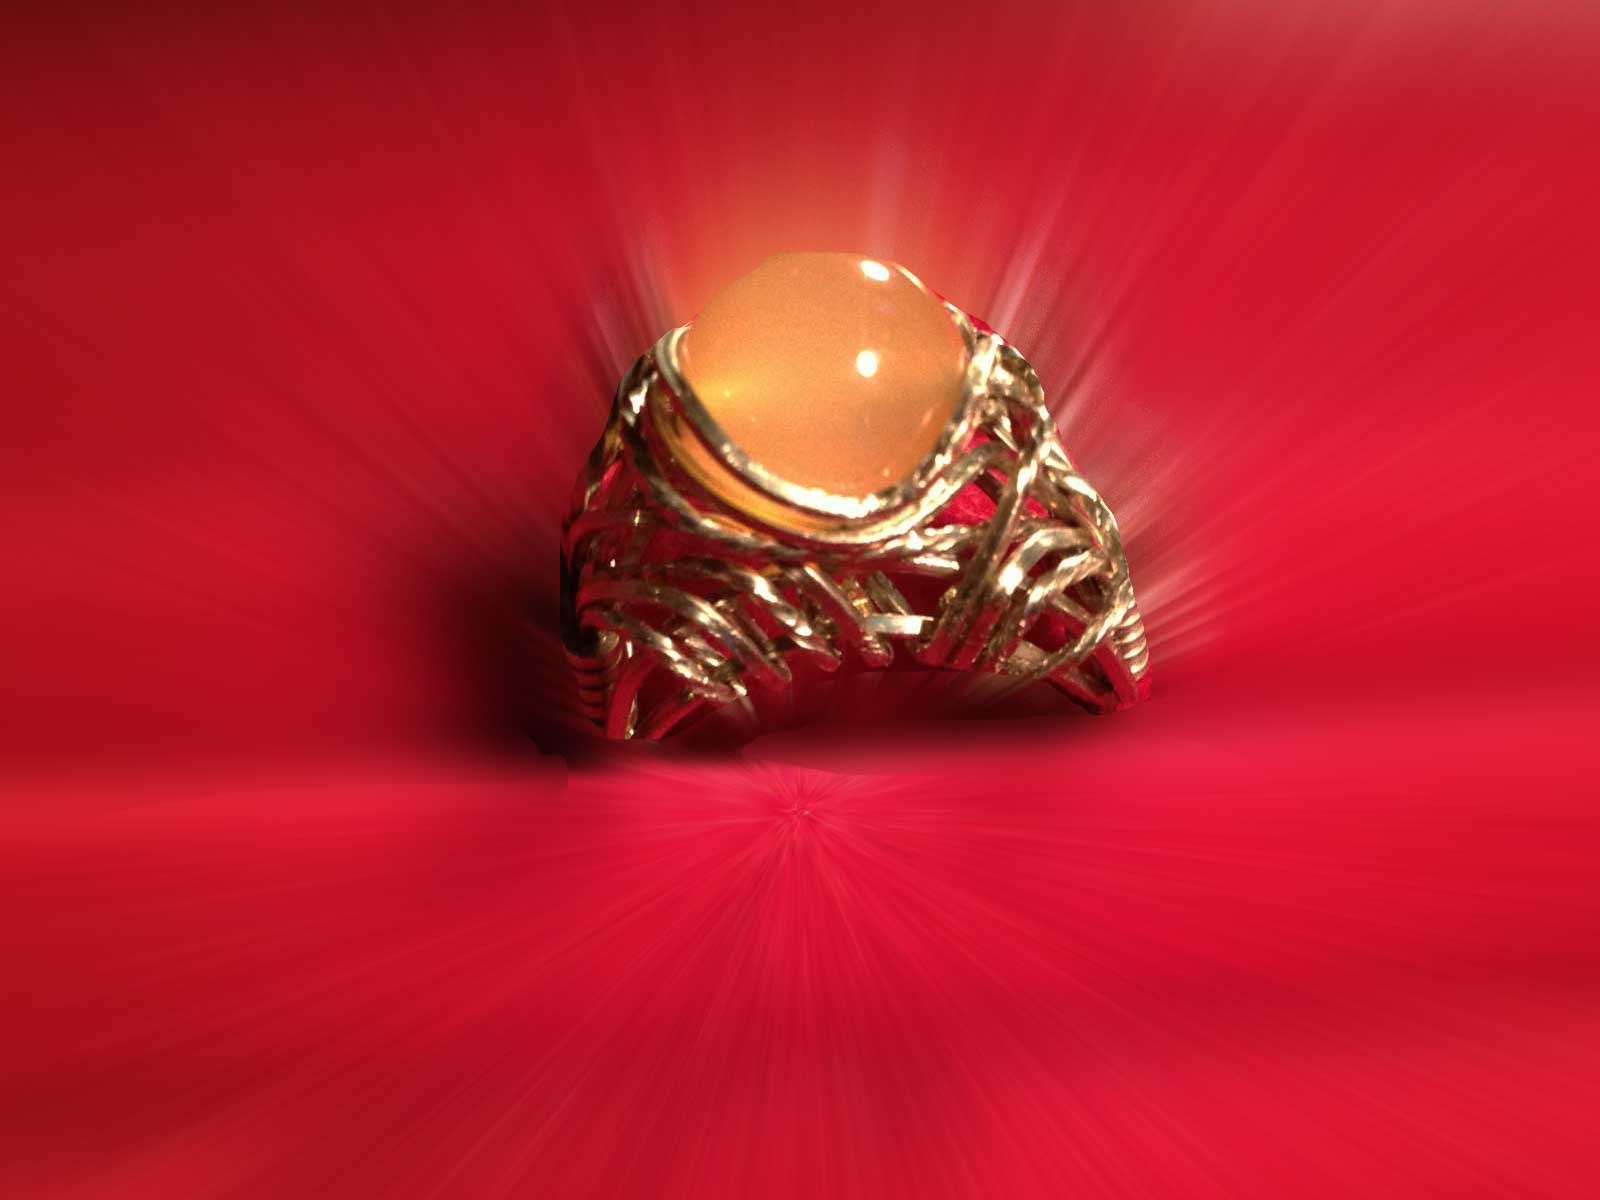 Nickel silver wire-sculpted ring with translucent  agate bead ...